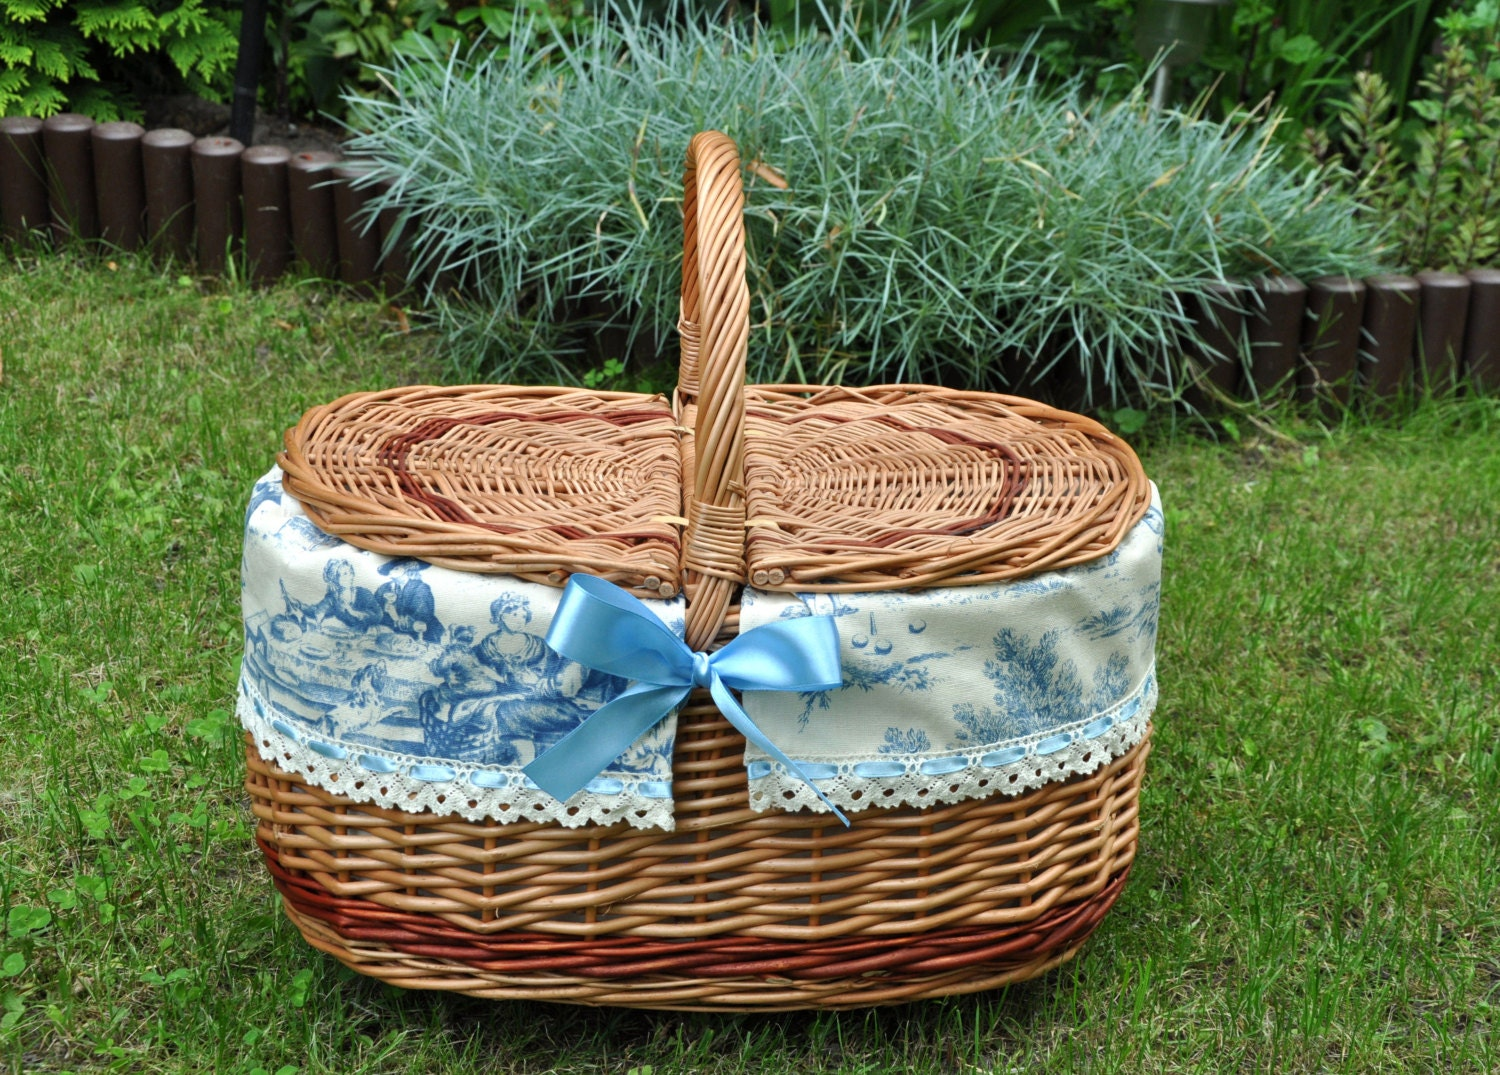 Wedding Gift Picnic Basket : Picnic basket couples gift gift for wedding toile by AgaArtFactory